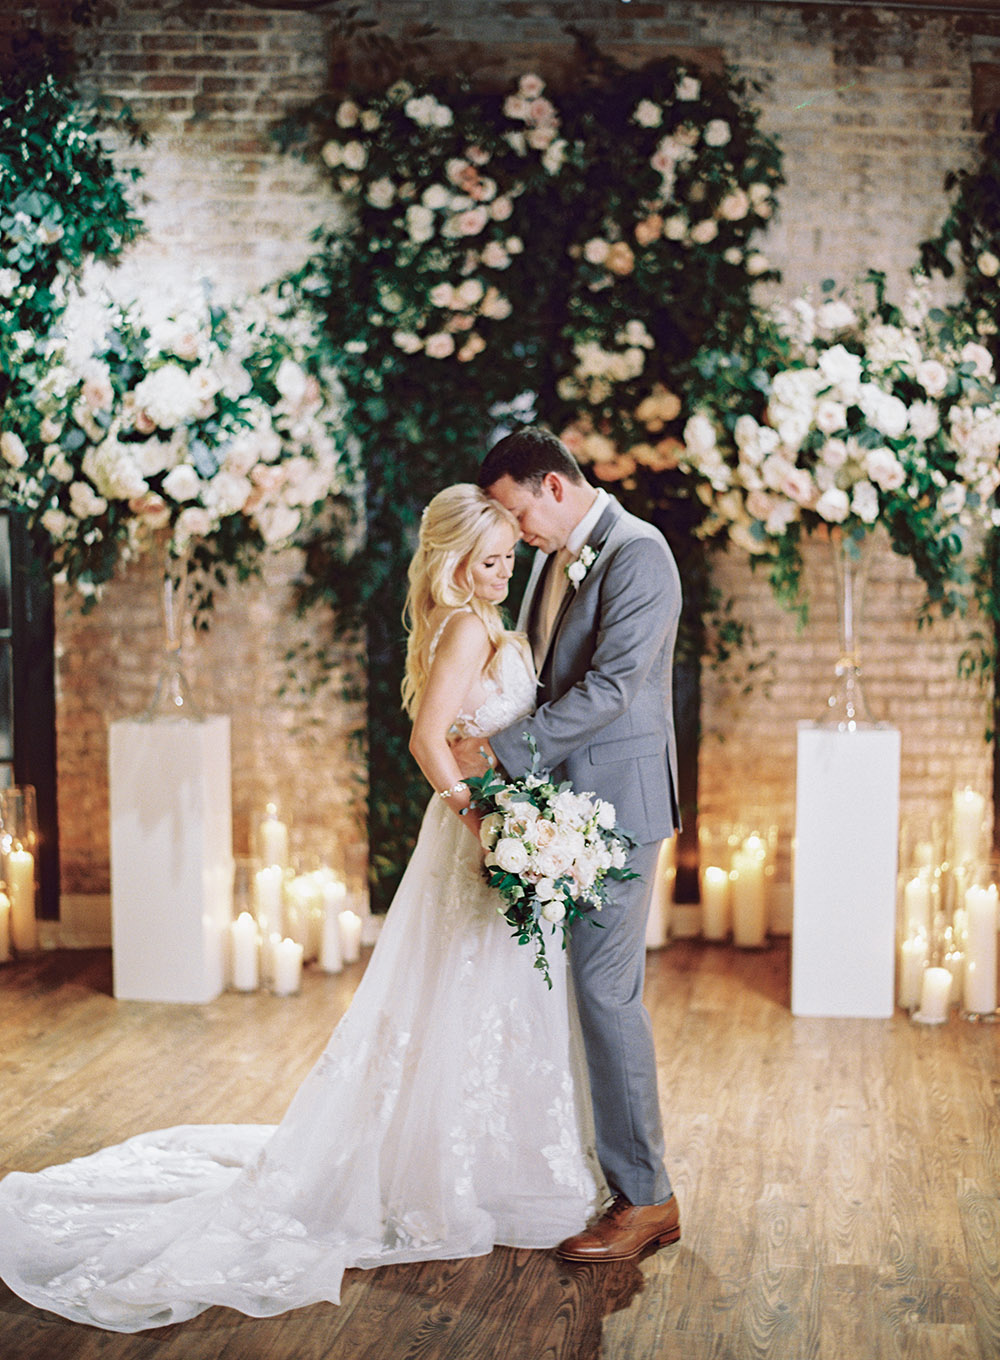 Bride and groom kiss at The Chicory in New Orleans by Peony Photography